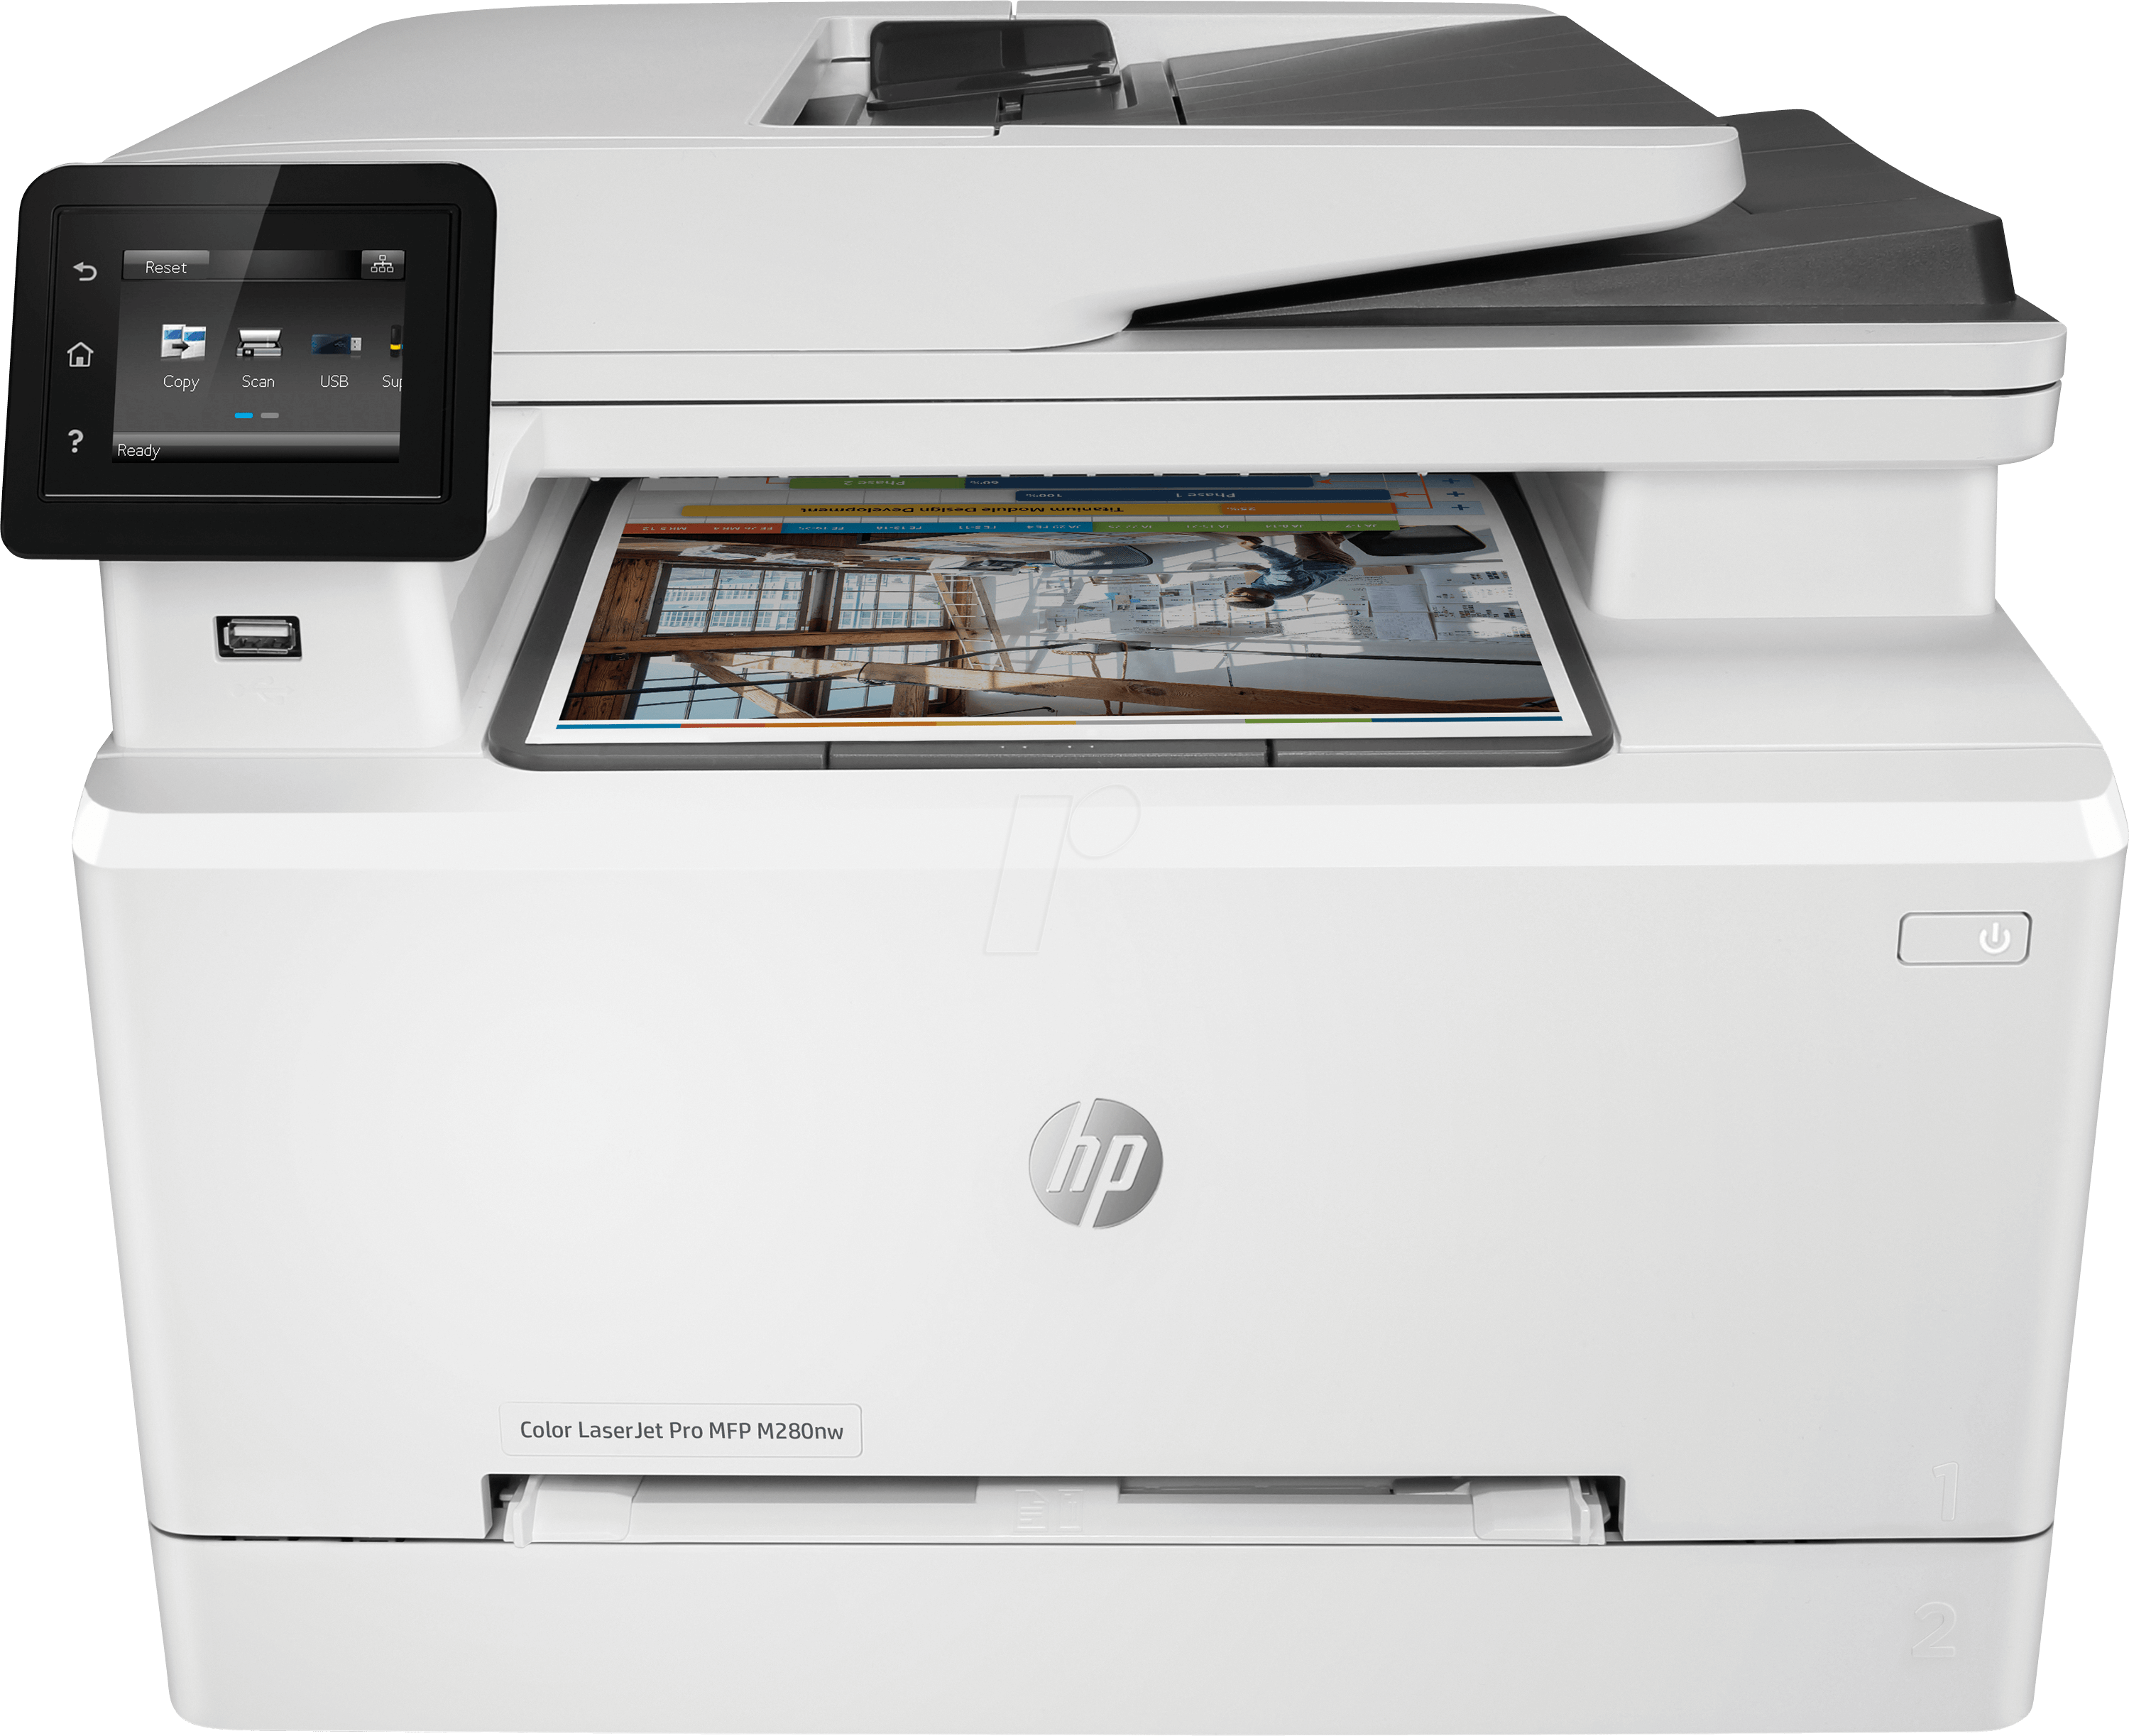 hewlett packard photo smart 1000